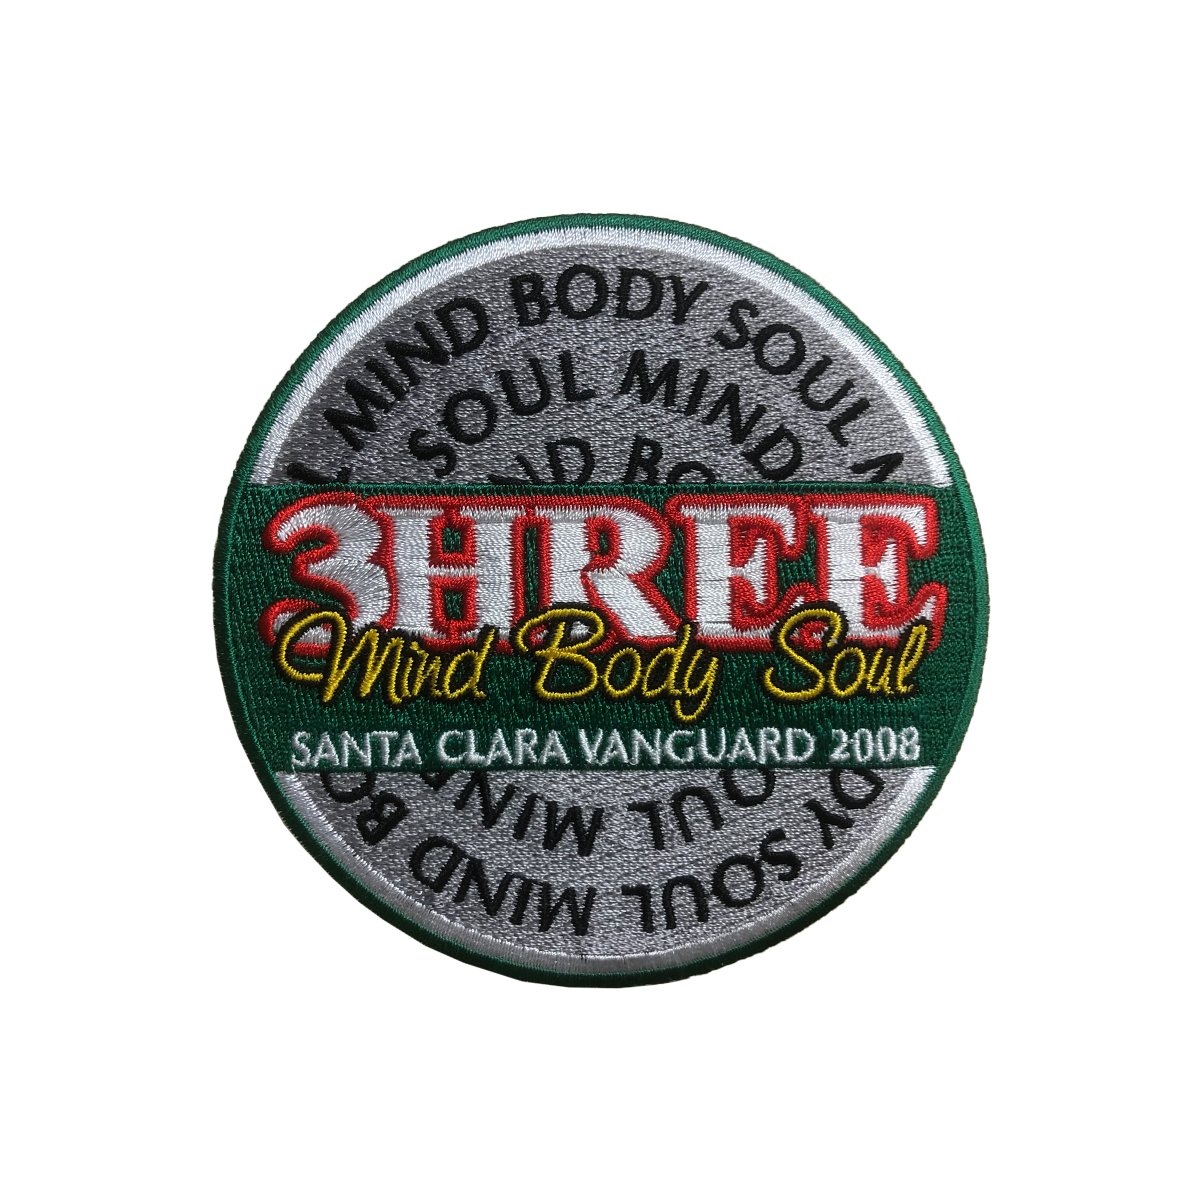 2008 3HREE Mind Body Soul Show Patch